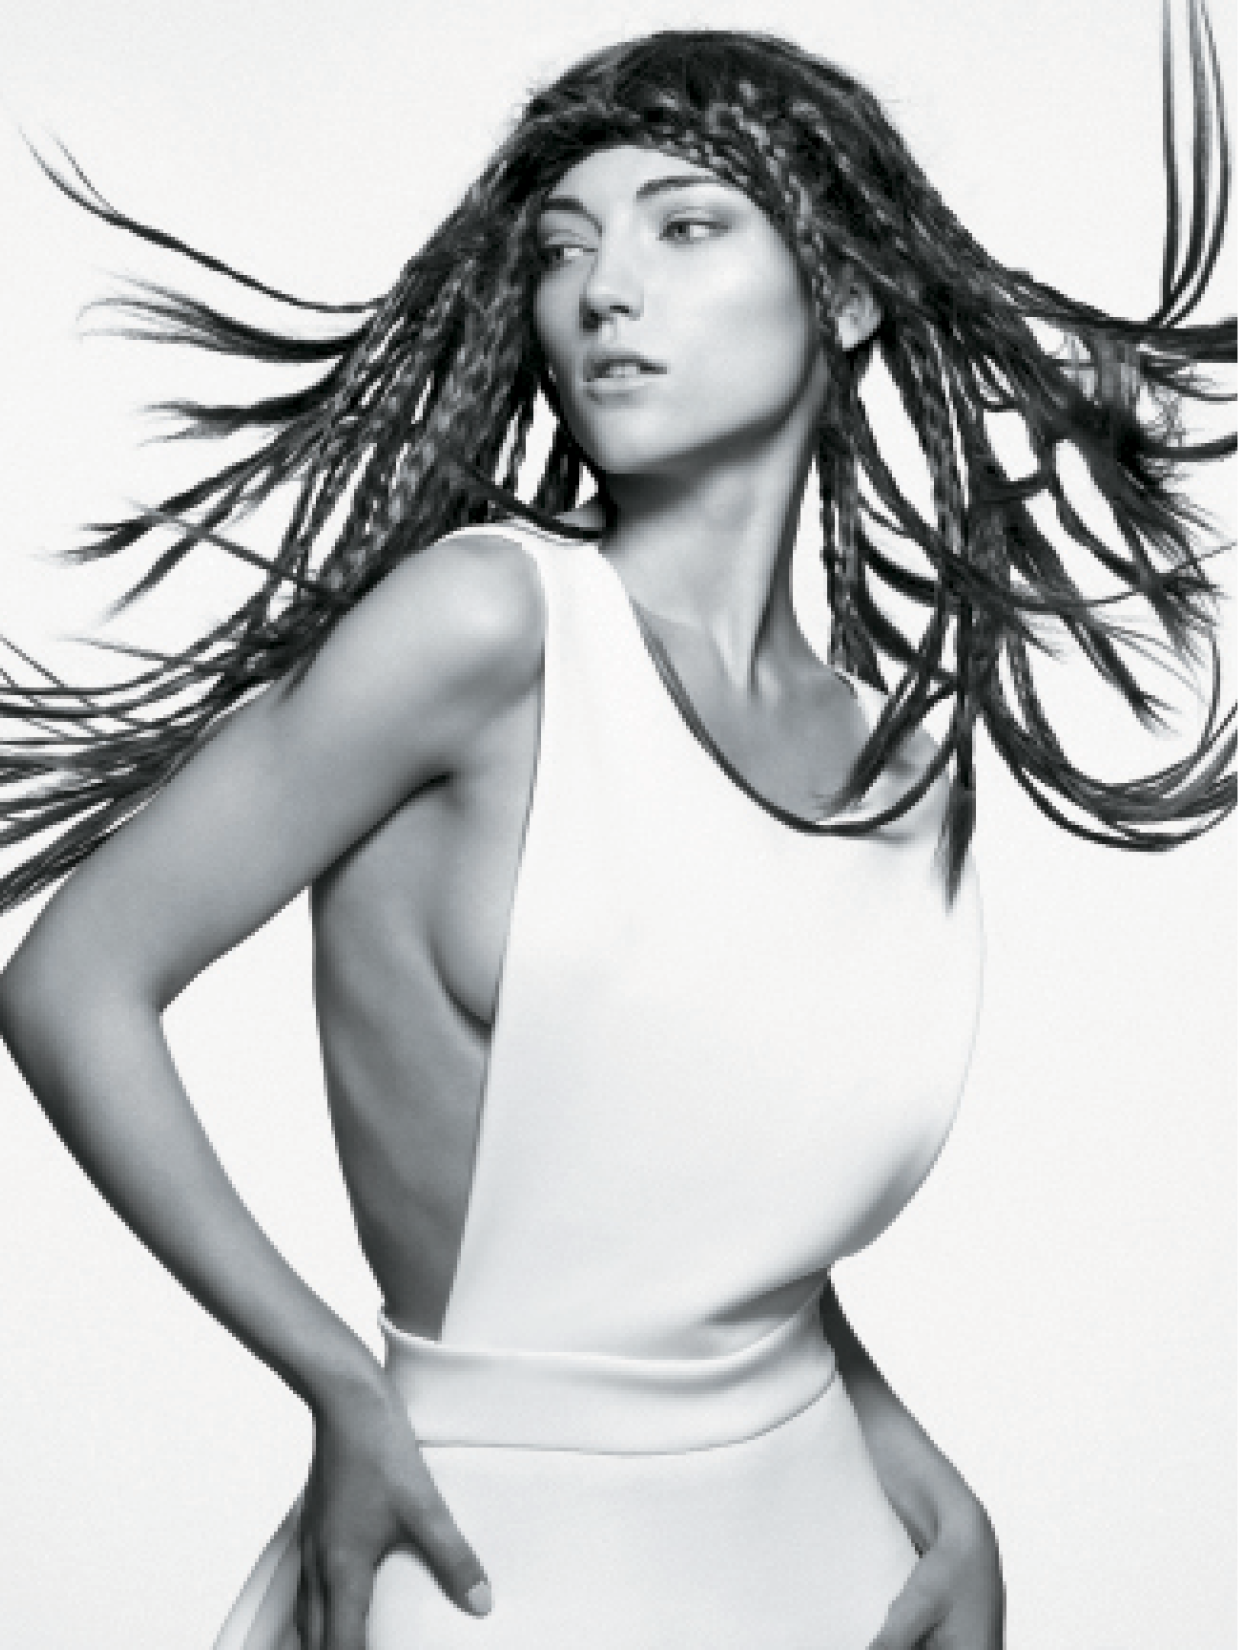 For this long, braided style, Turnbull first individually plaited sections of the hair and left the ends straight. A wind machine allowed the plaits to flow freely for the desired shot.